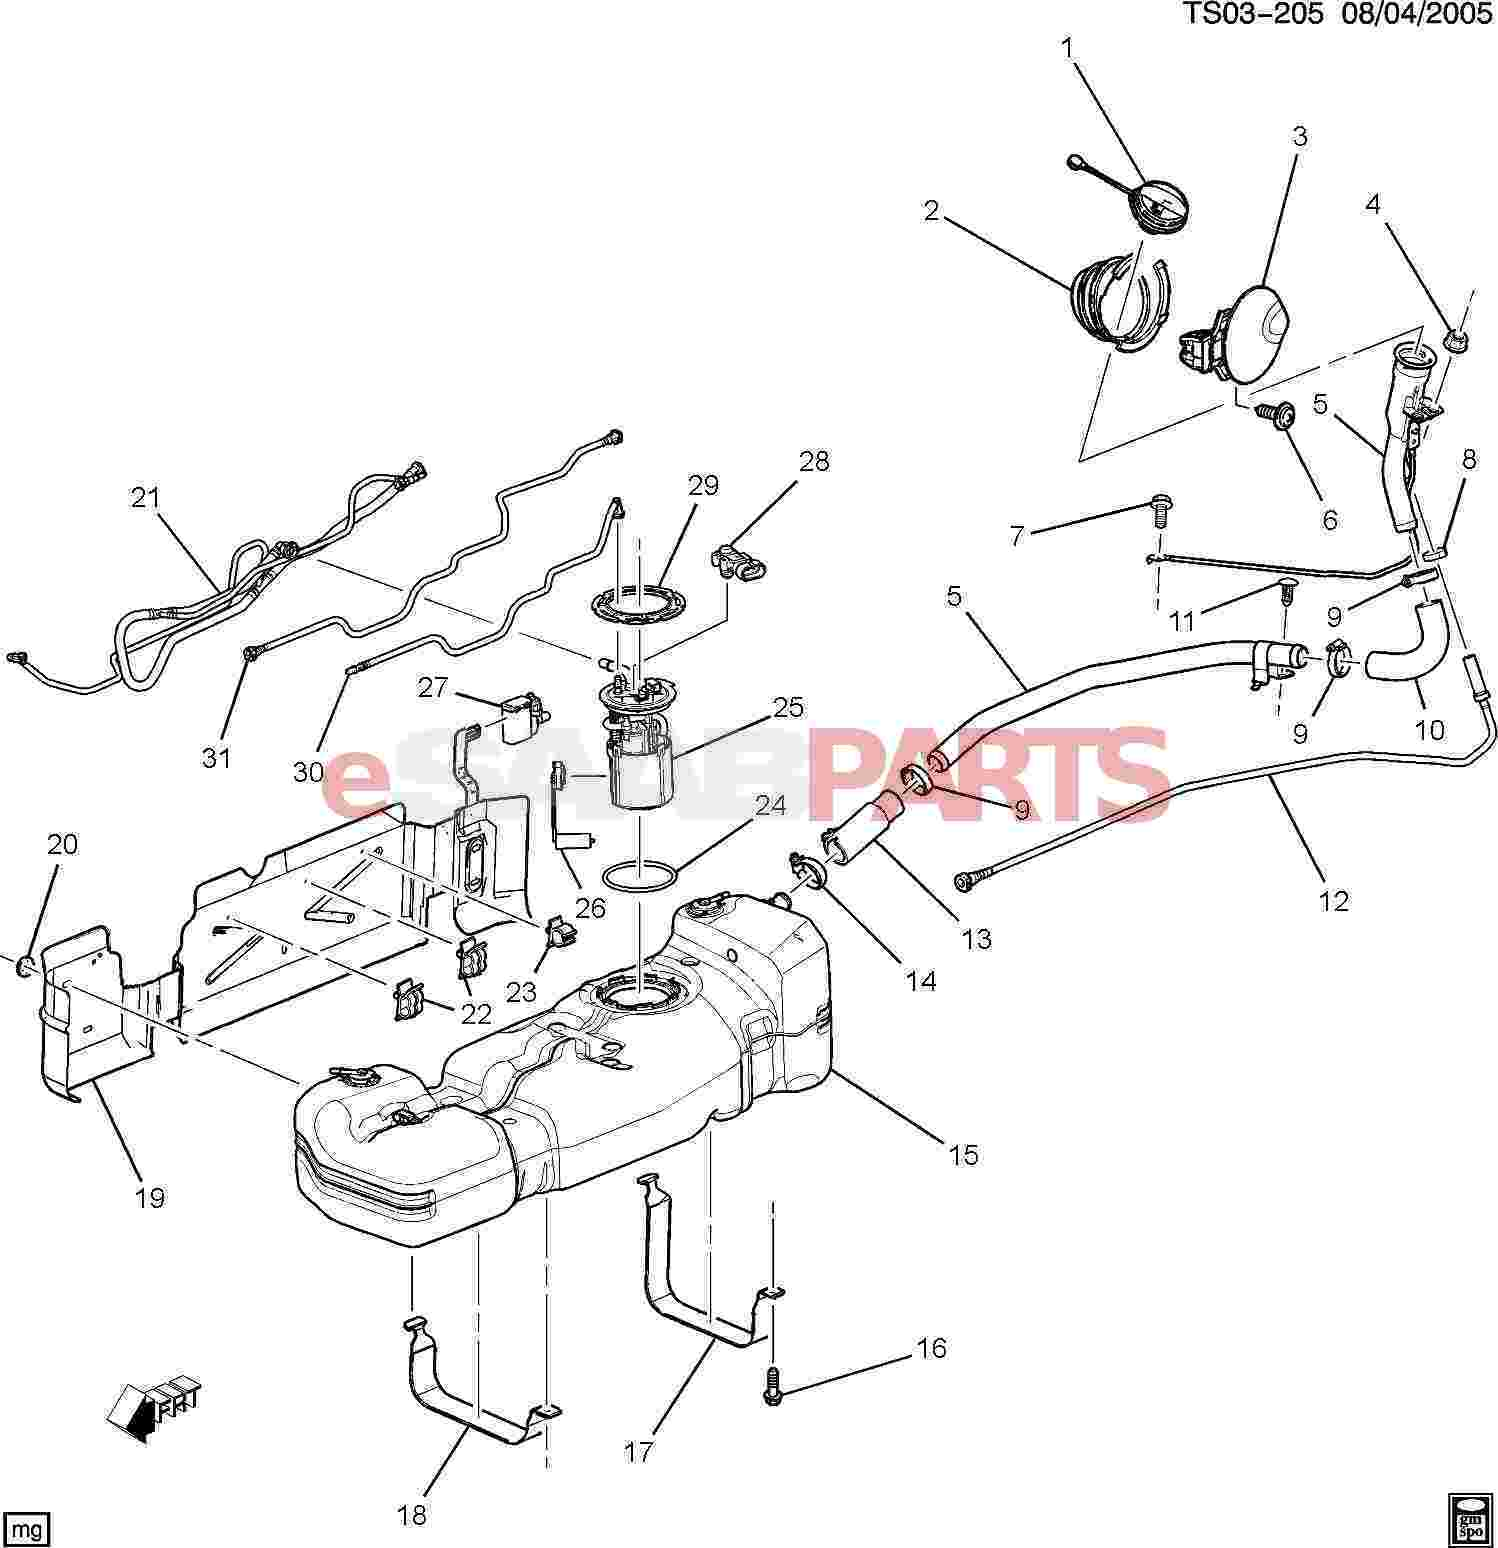 Timing Sensor Location Honda further Windshield Washer Pump Location Gmc Envoy additionally Diagram view likewise Serpentine Belt Diagram 2003 Chevrolet Trailblazer 6 Cylinder 42 Liter Engine With 150   Alternator 01494 further 2006 2008 Gmc Canyon 3 5l 3 7l Serpentine Belt Diagrams. on gmc envoy engine diagram